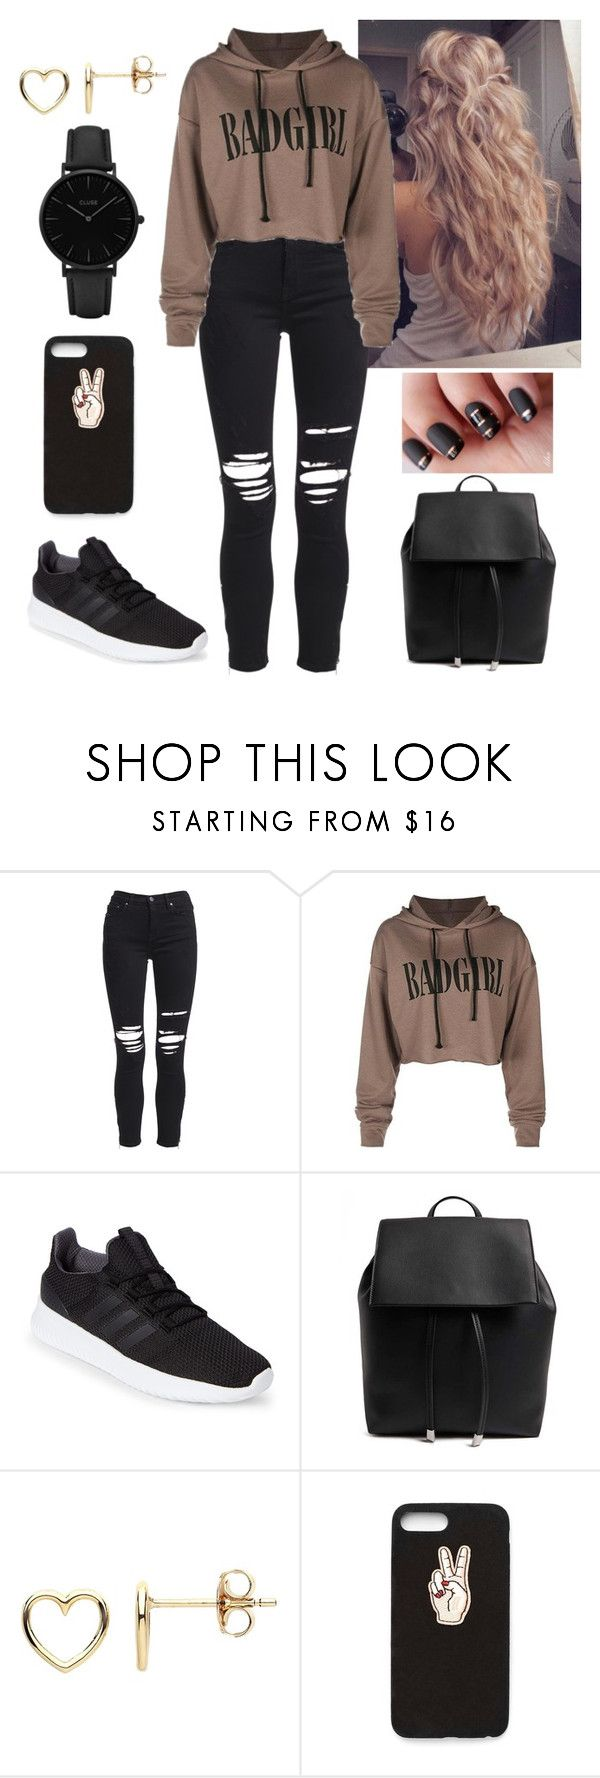 """""""Even bad girls lust for love"""" by paoladouka on Polyvore featuring AMIRI, adidas, Forever 21, Estella Bartlett, Nasty Gal and CLUSE"""